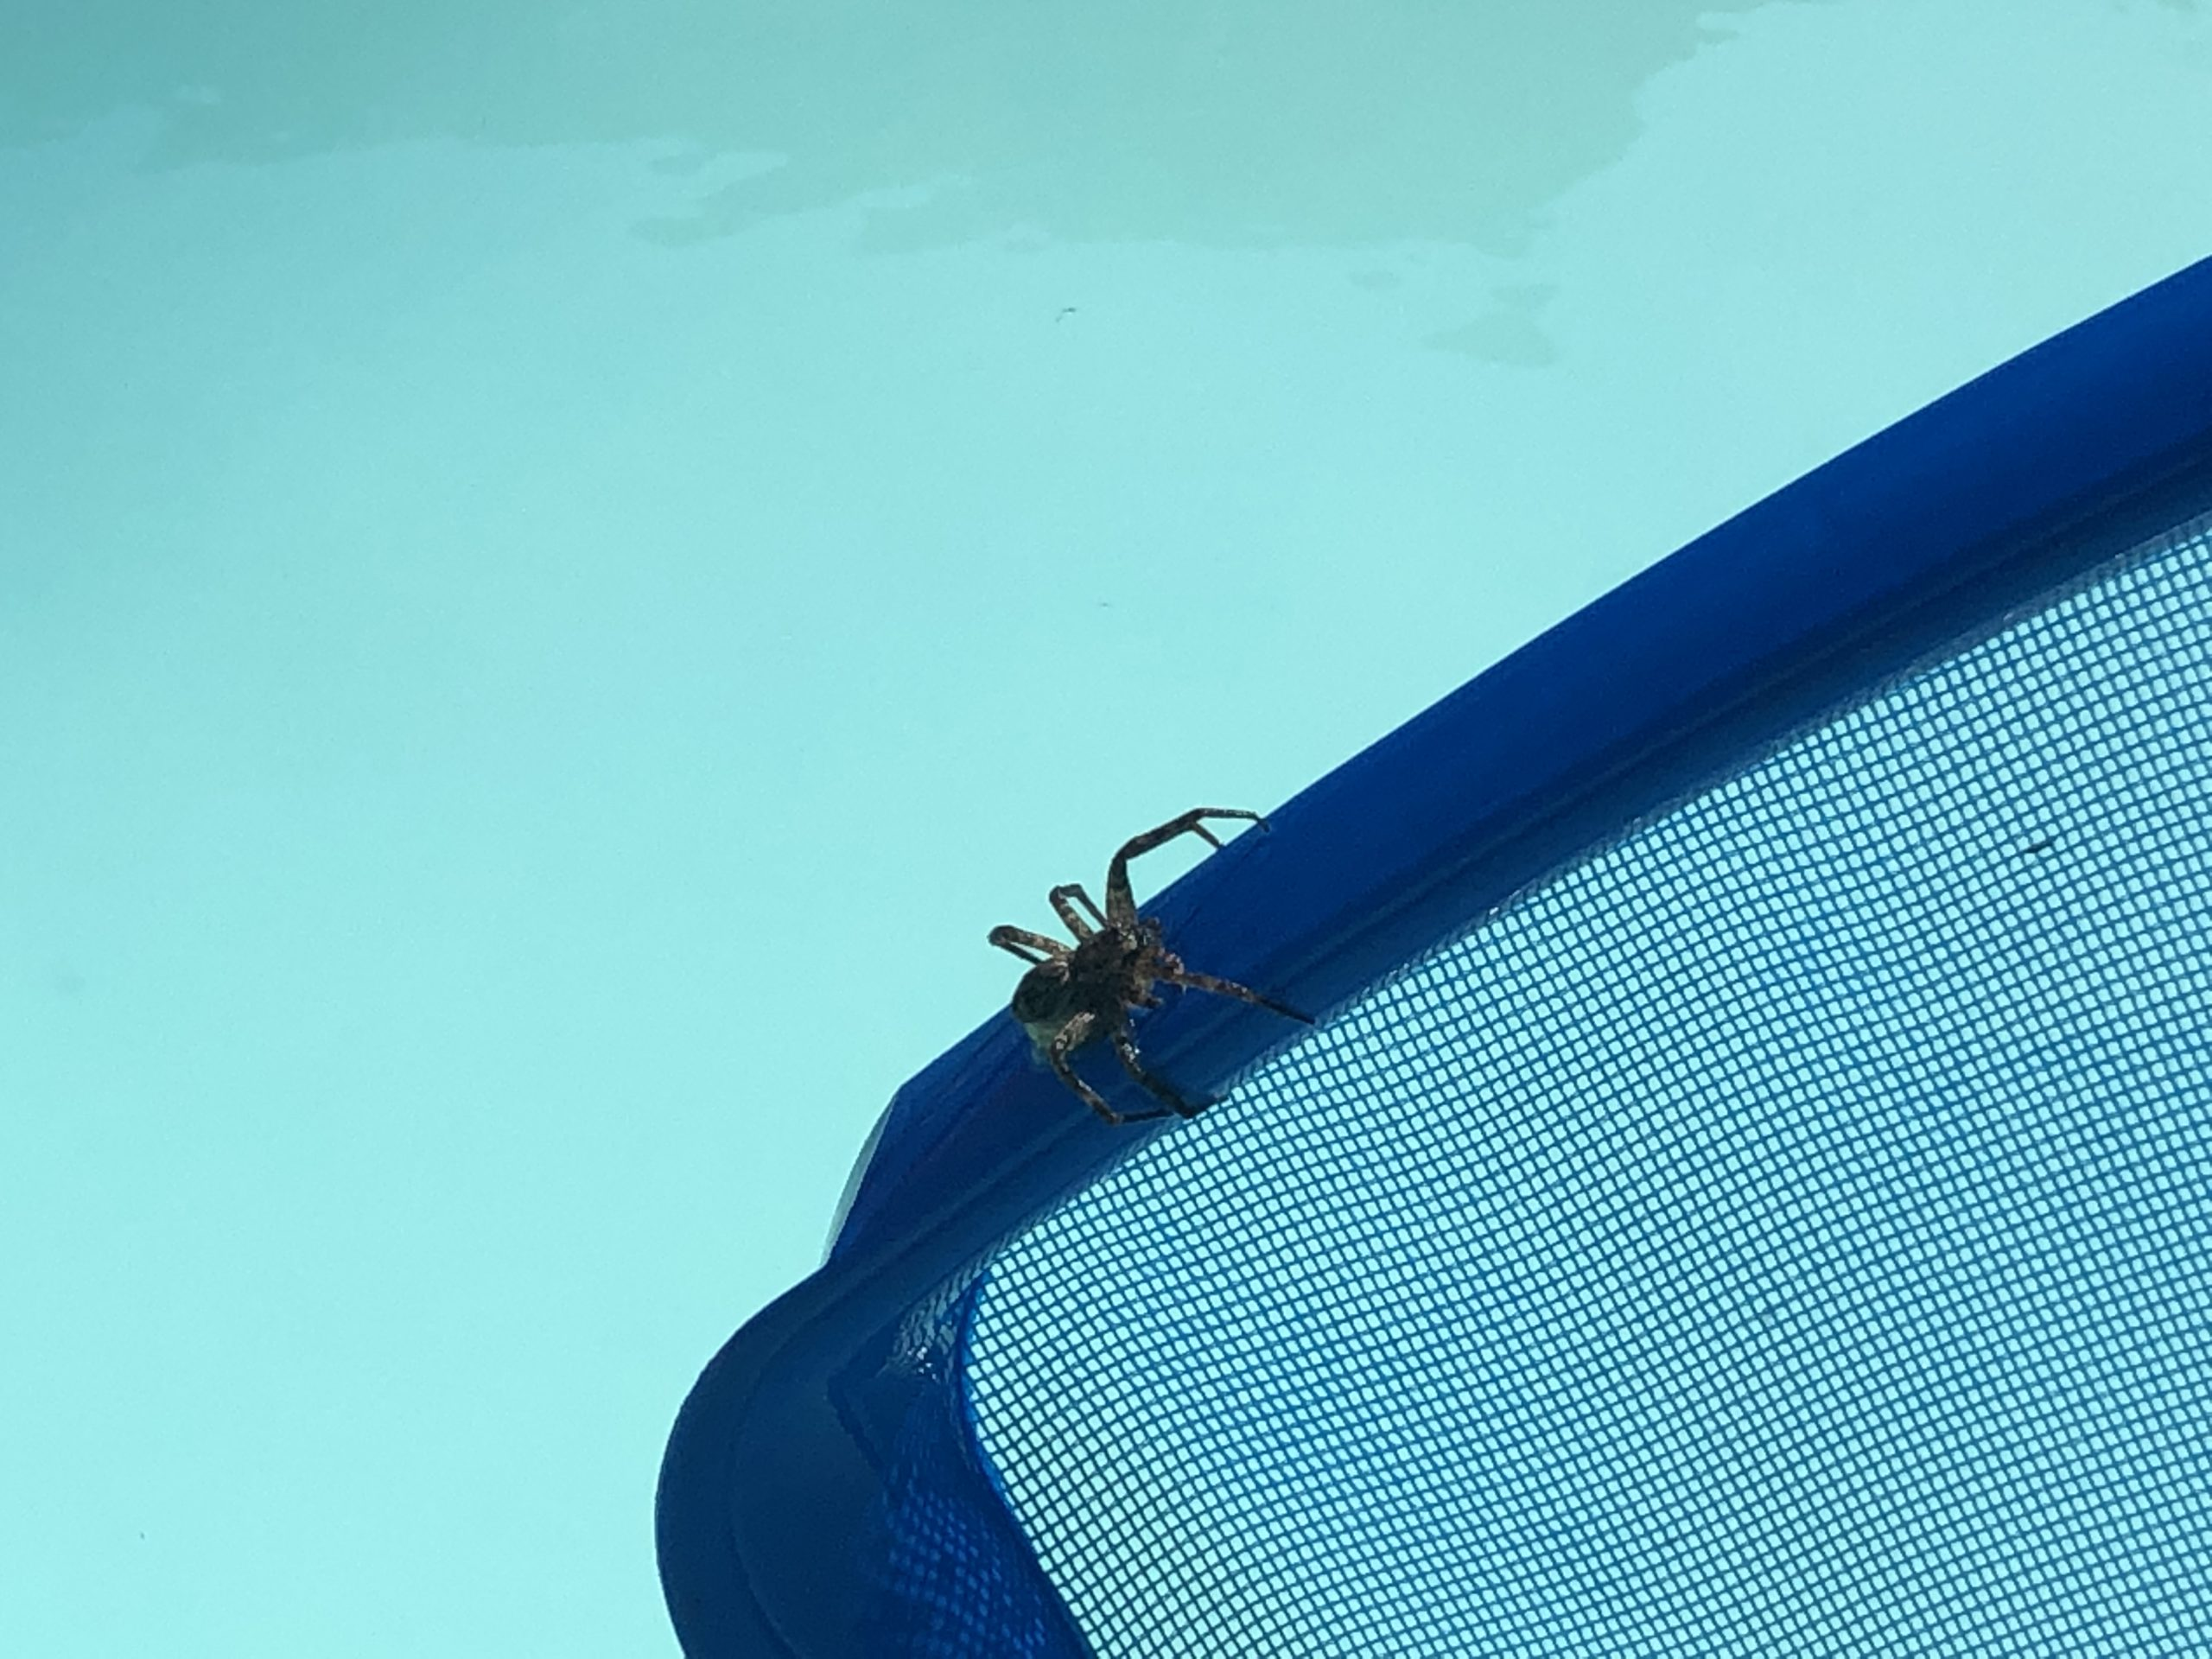 A huge pool spider